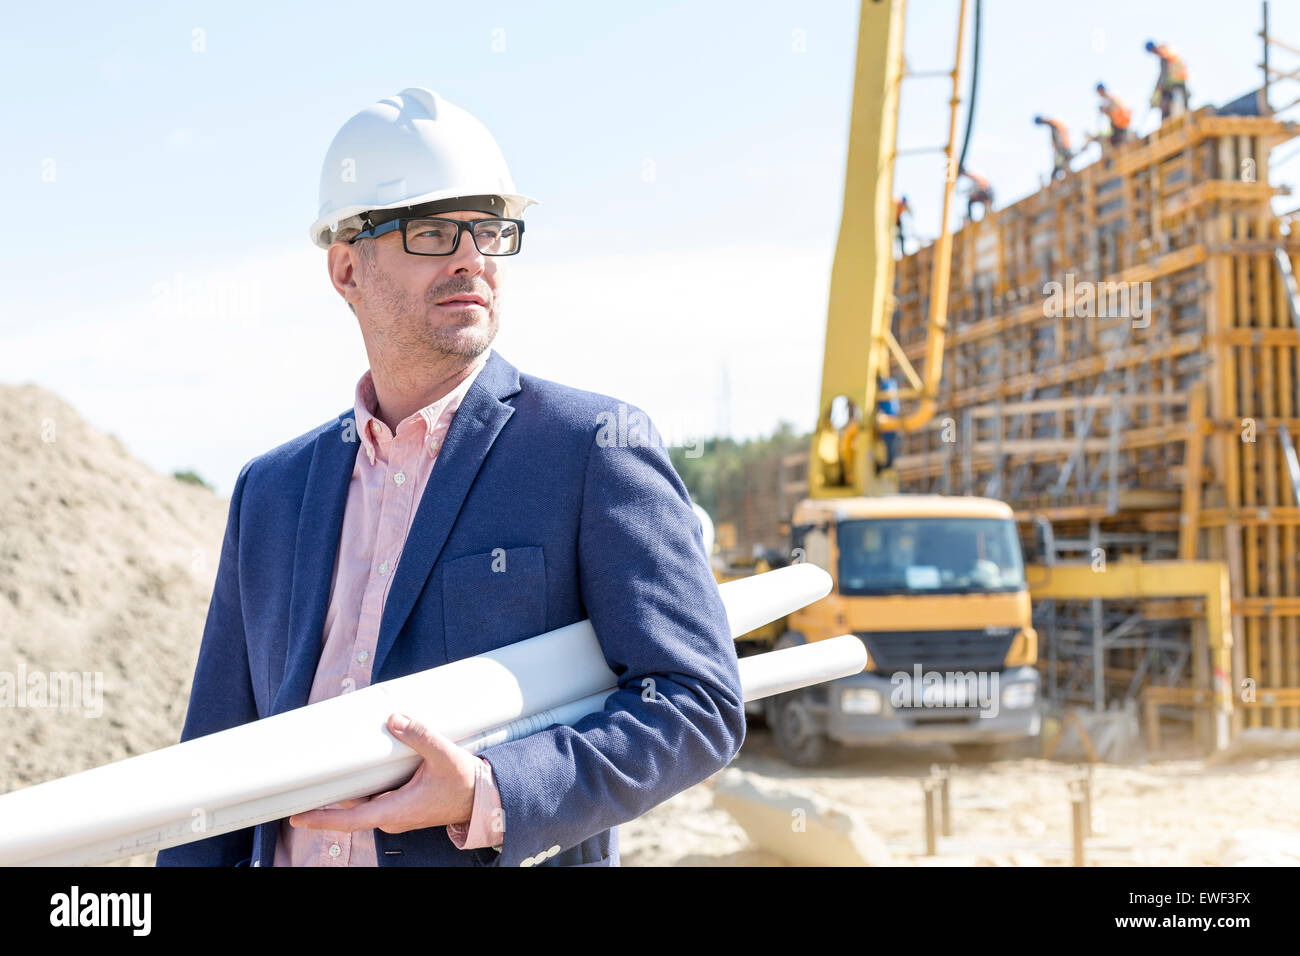 Confident architect holding rolled up blueprints at construction site - Stock Image